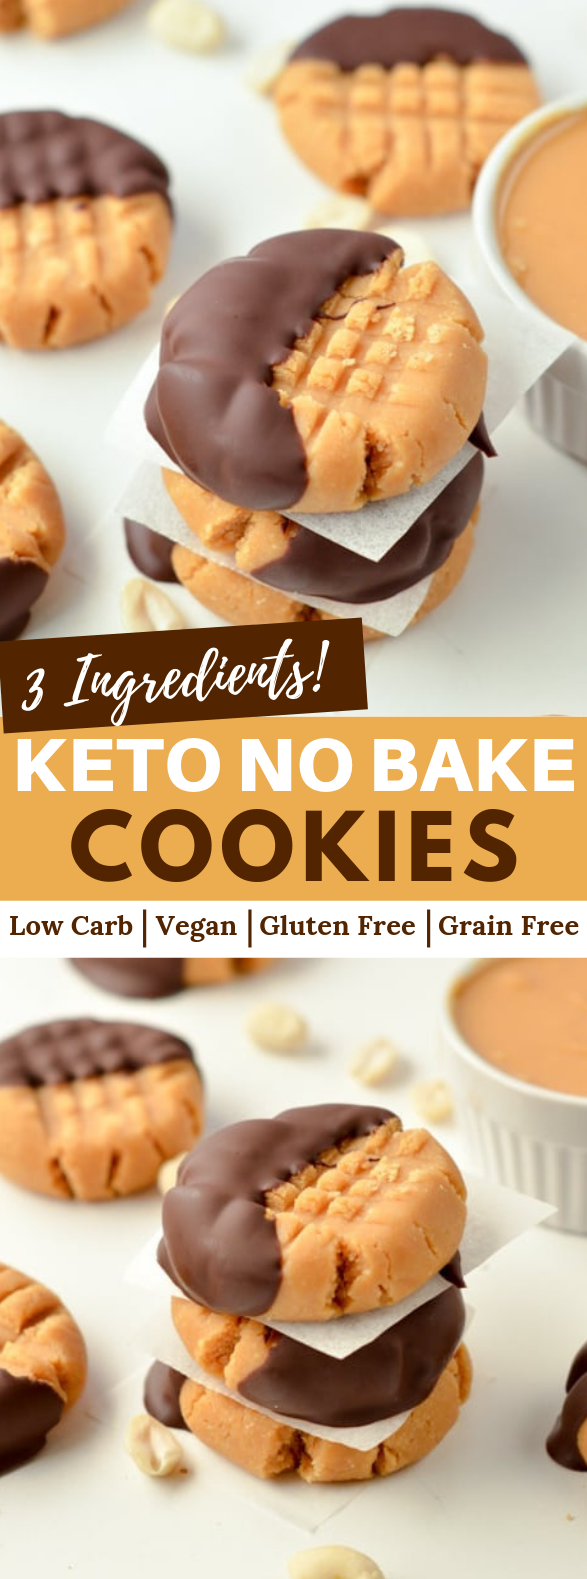 NO BAKE PEANUT BUTTER COOKIES #keto #lowcarb